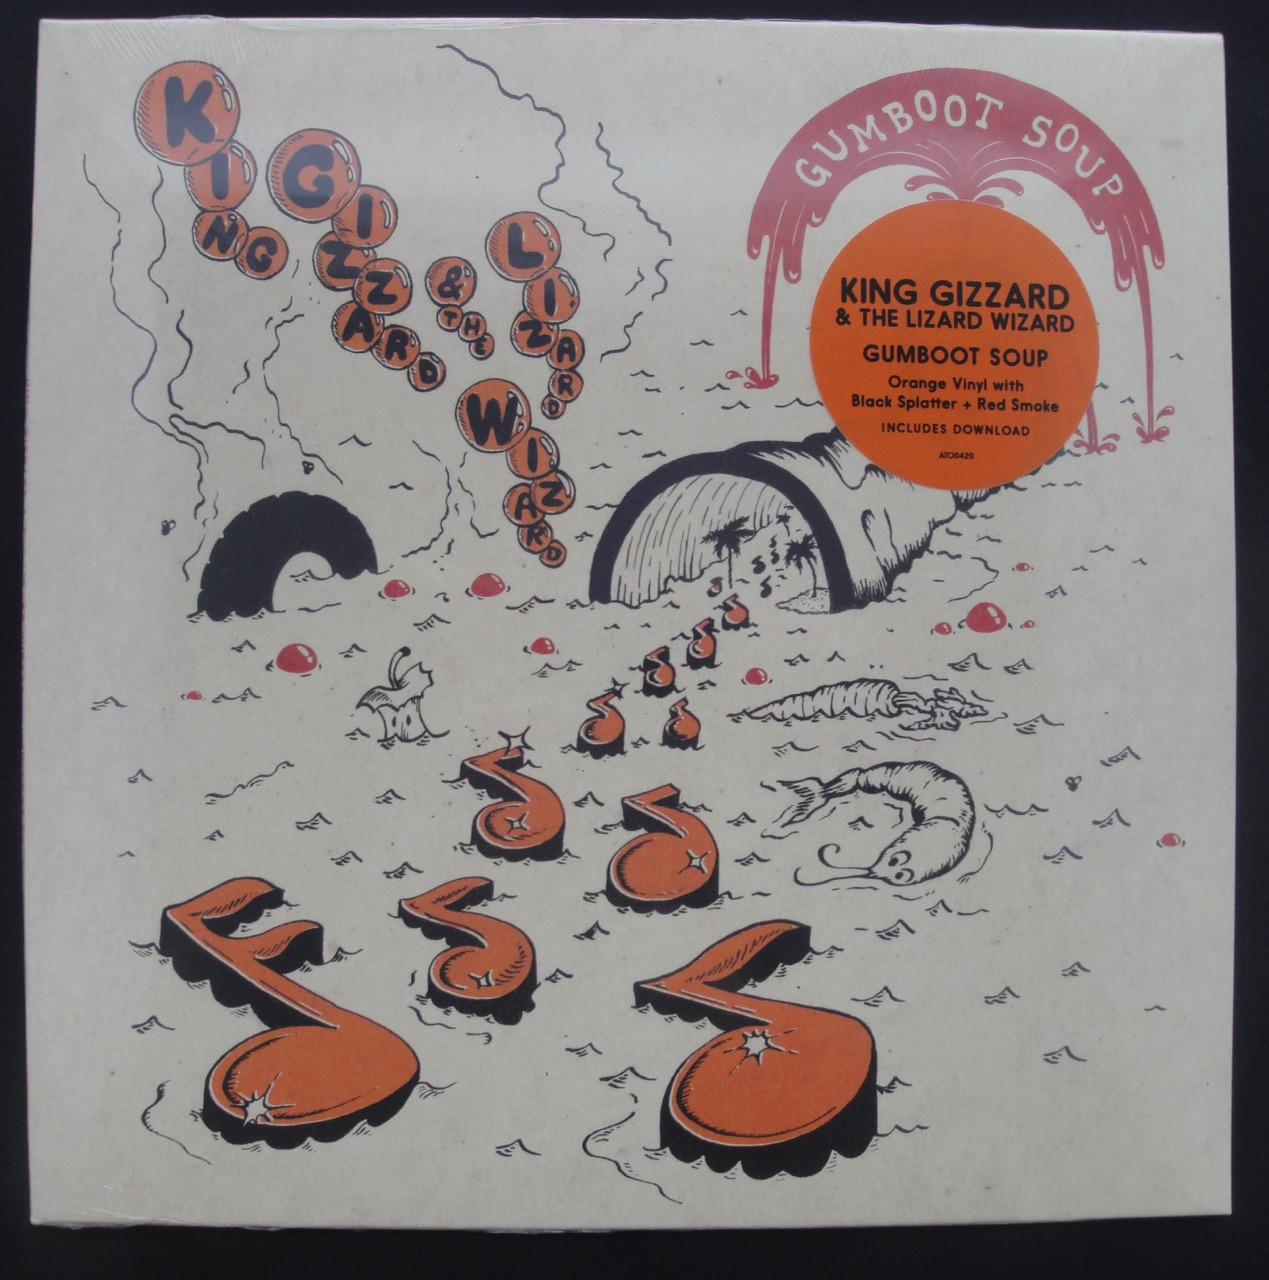 King Gizzard and the Lizard Wizard - Gumboot Soup - Colored Vinyl, LP, 2018